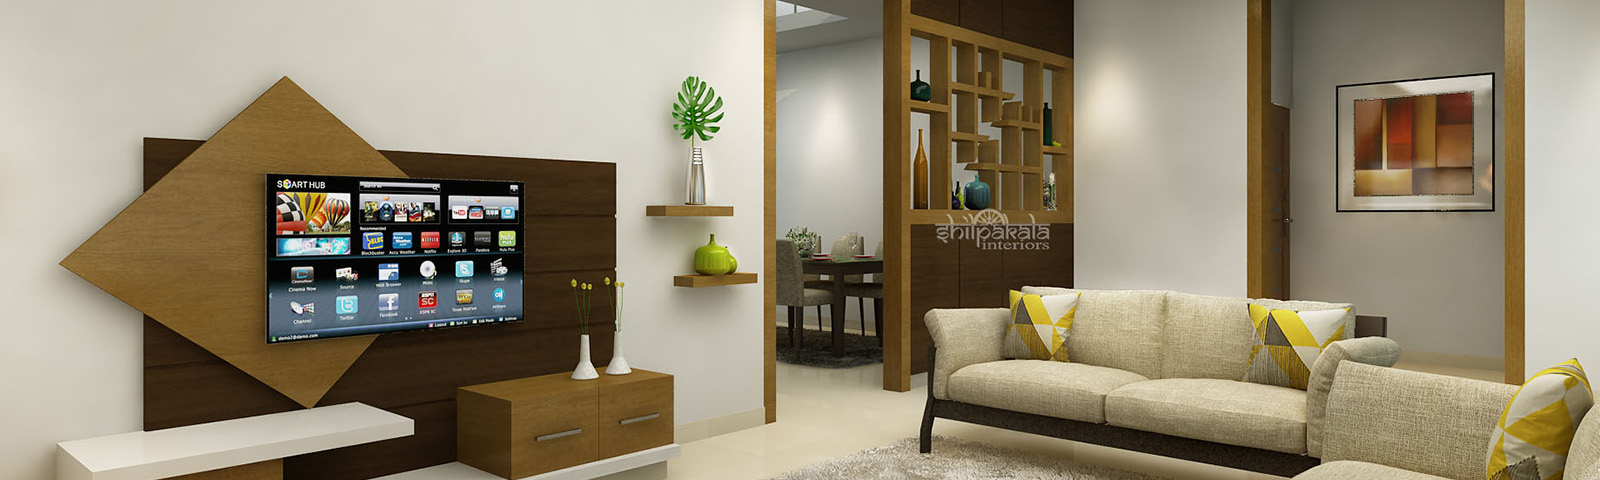 shilpakala home flat interior designers in kerala and thrissur